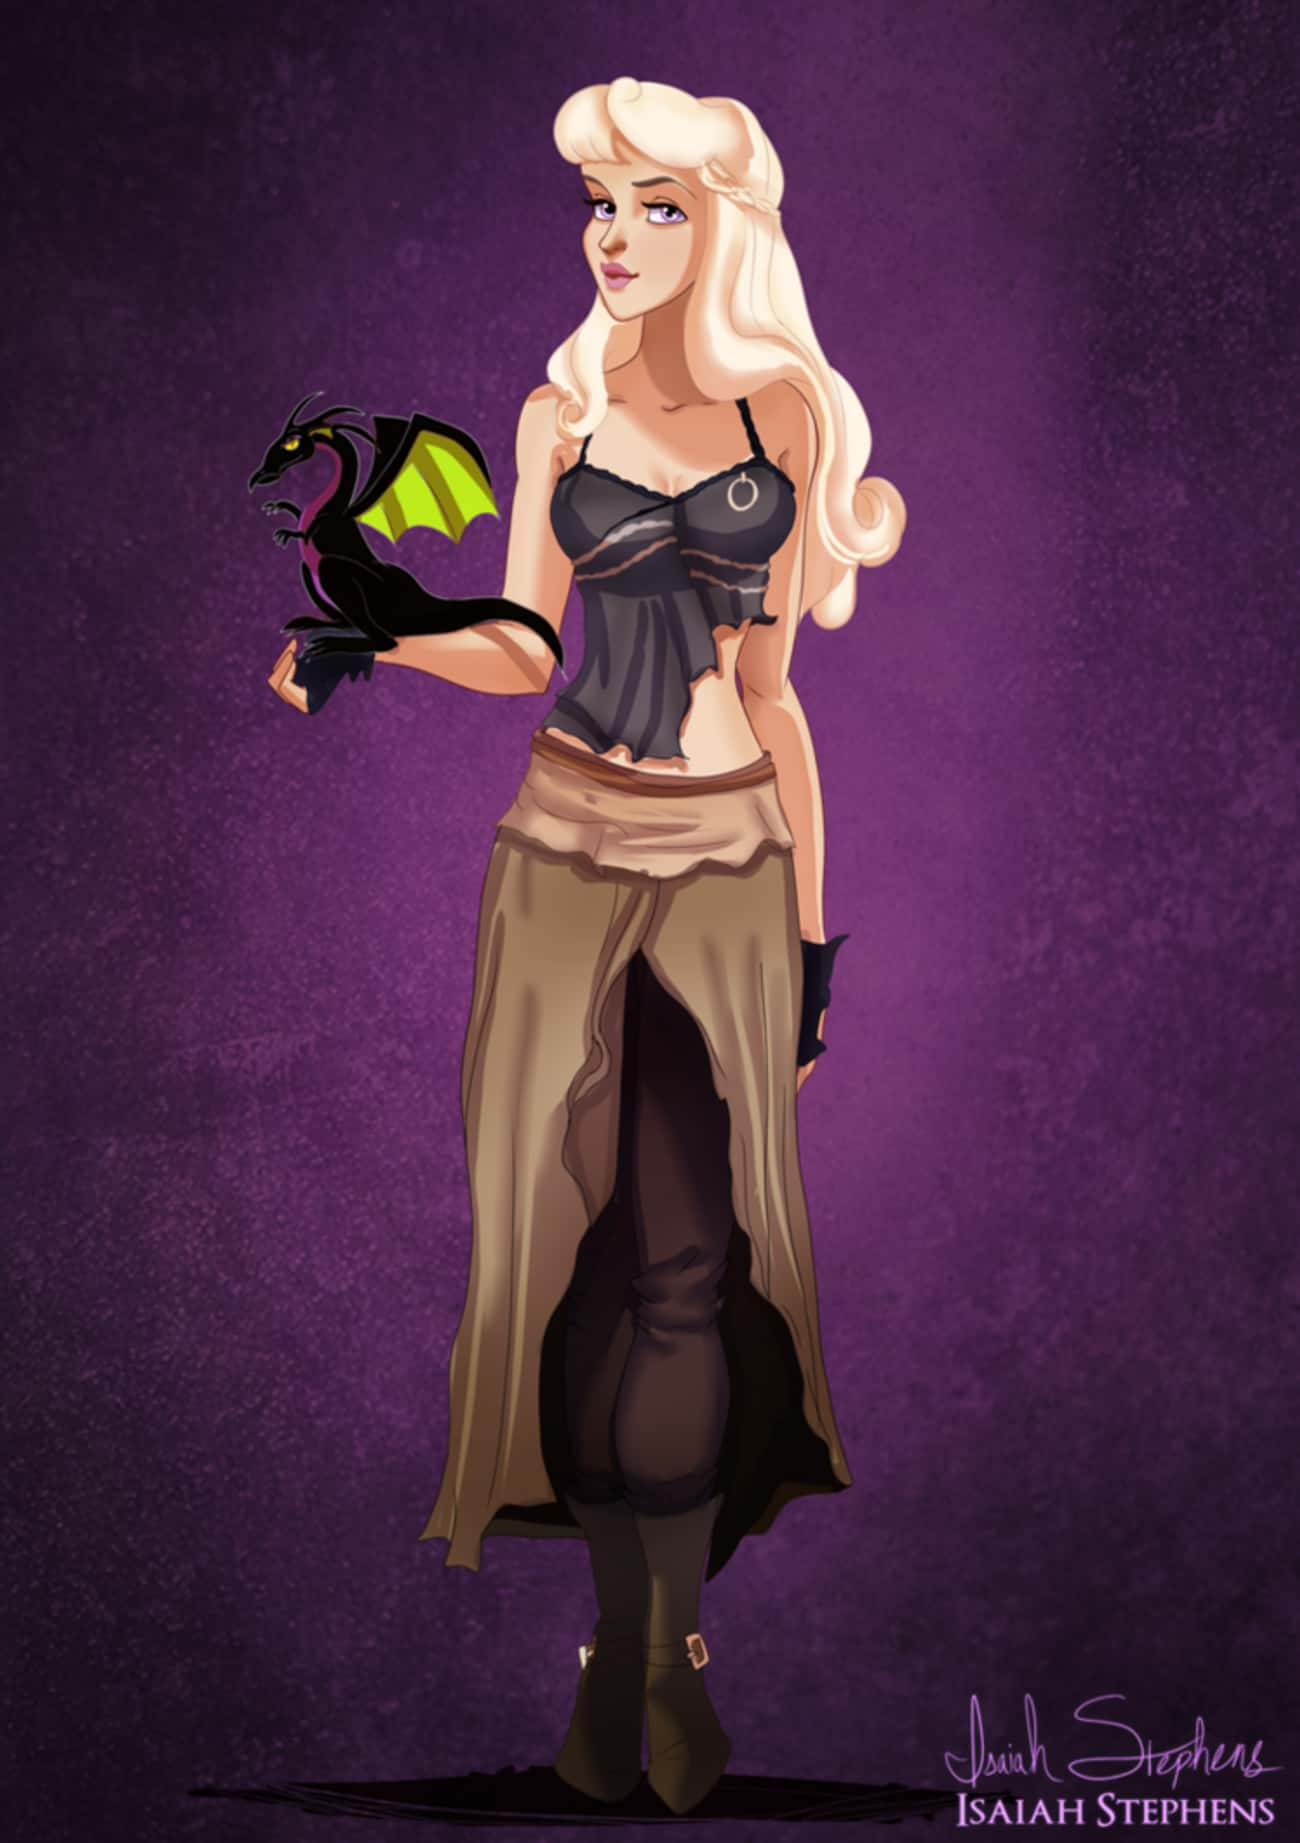 Halloween Means Princess Auror is listed (or ranked) 3 on the list This Artist Drew Your Favorite Disney Characters All Dressed Up For Halloween